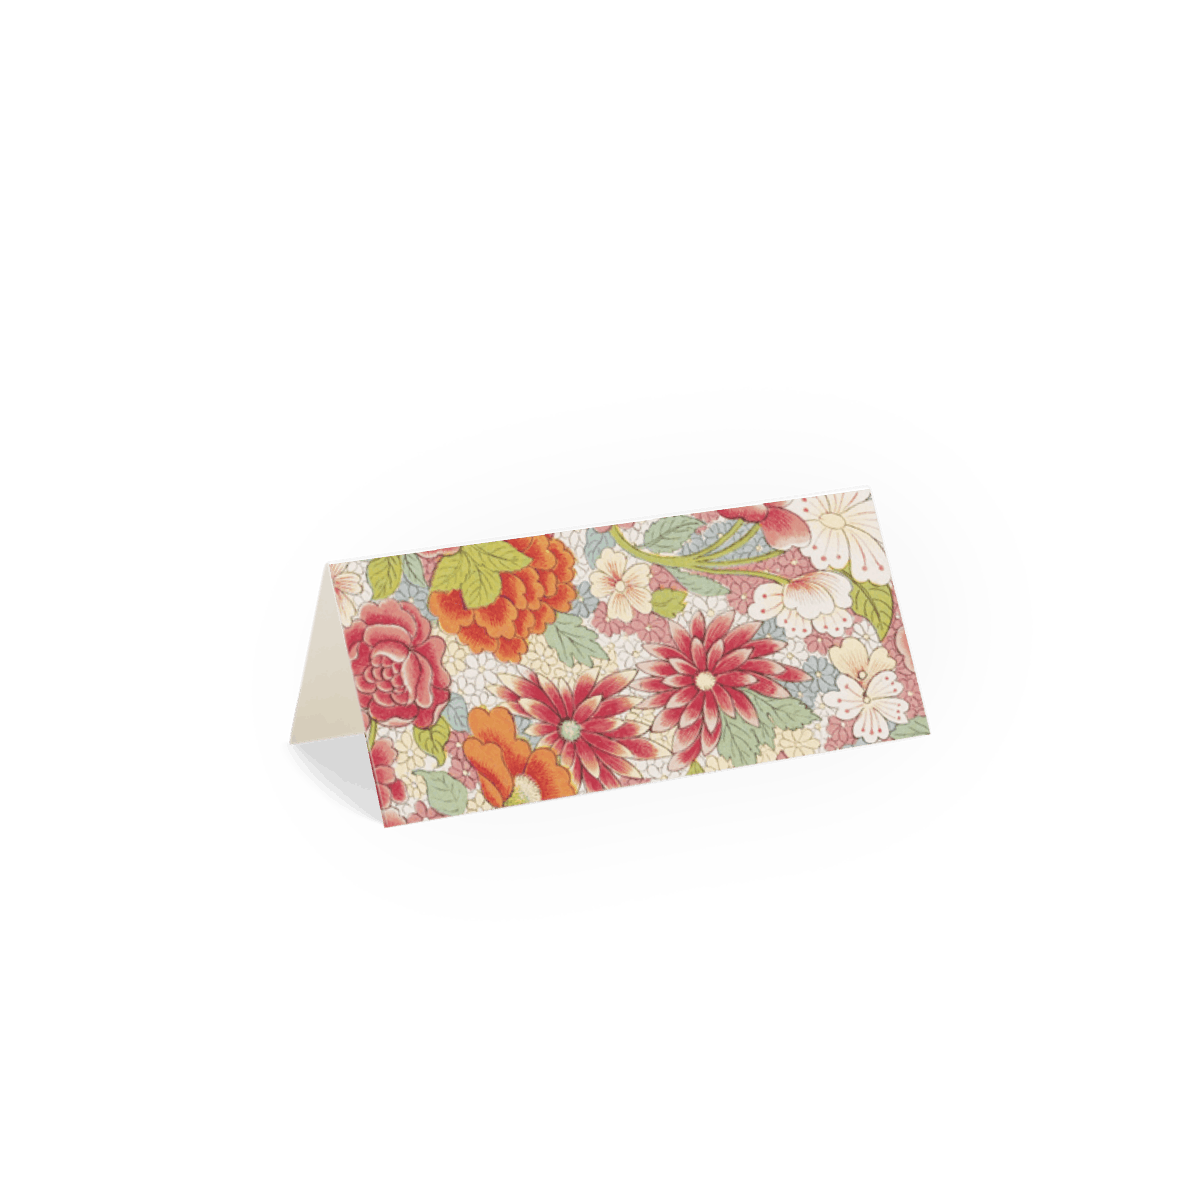 Https%3a%2f%2fwww.papier.com%2fproduct image%2f82588%2f15%2fred roses 19998 back 1562159738.png?ixlib=rb 1.1